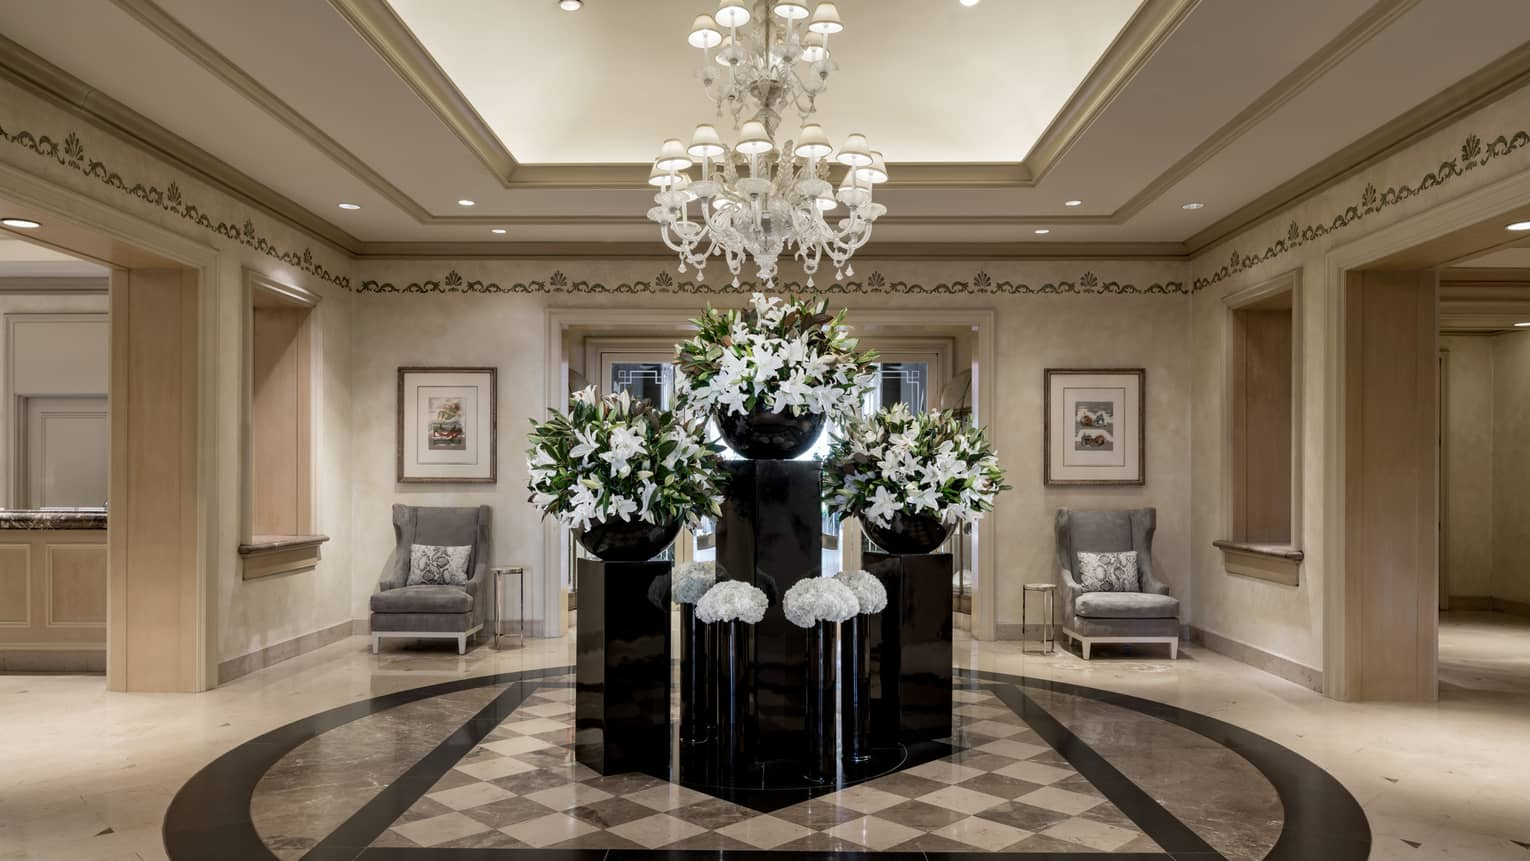 Large white floral displays on black tables under crystal chandelier in hotel lobby